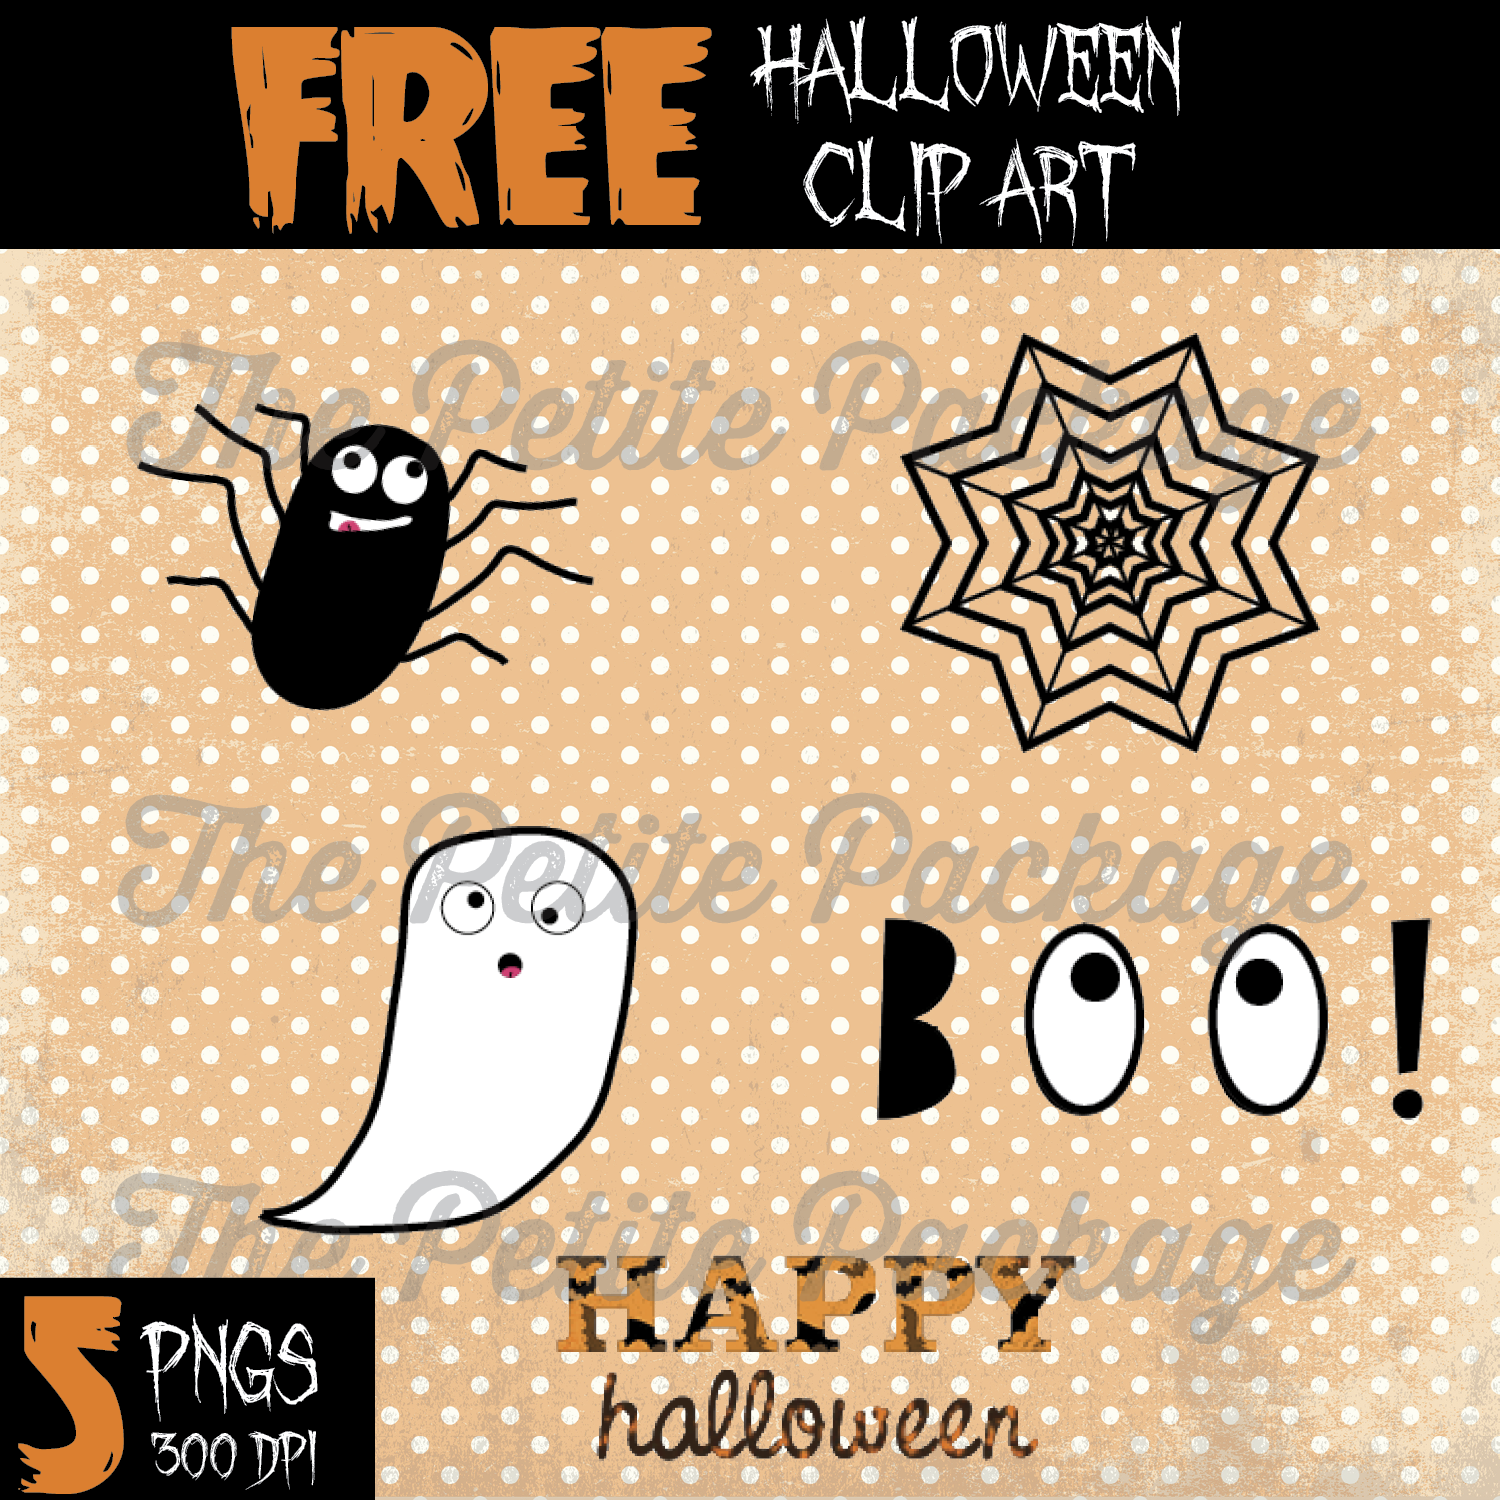 Clipart halloween monogram. Freebie friday downloadable clip